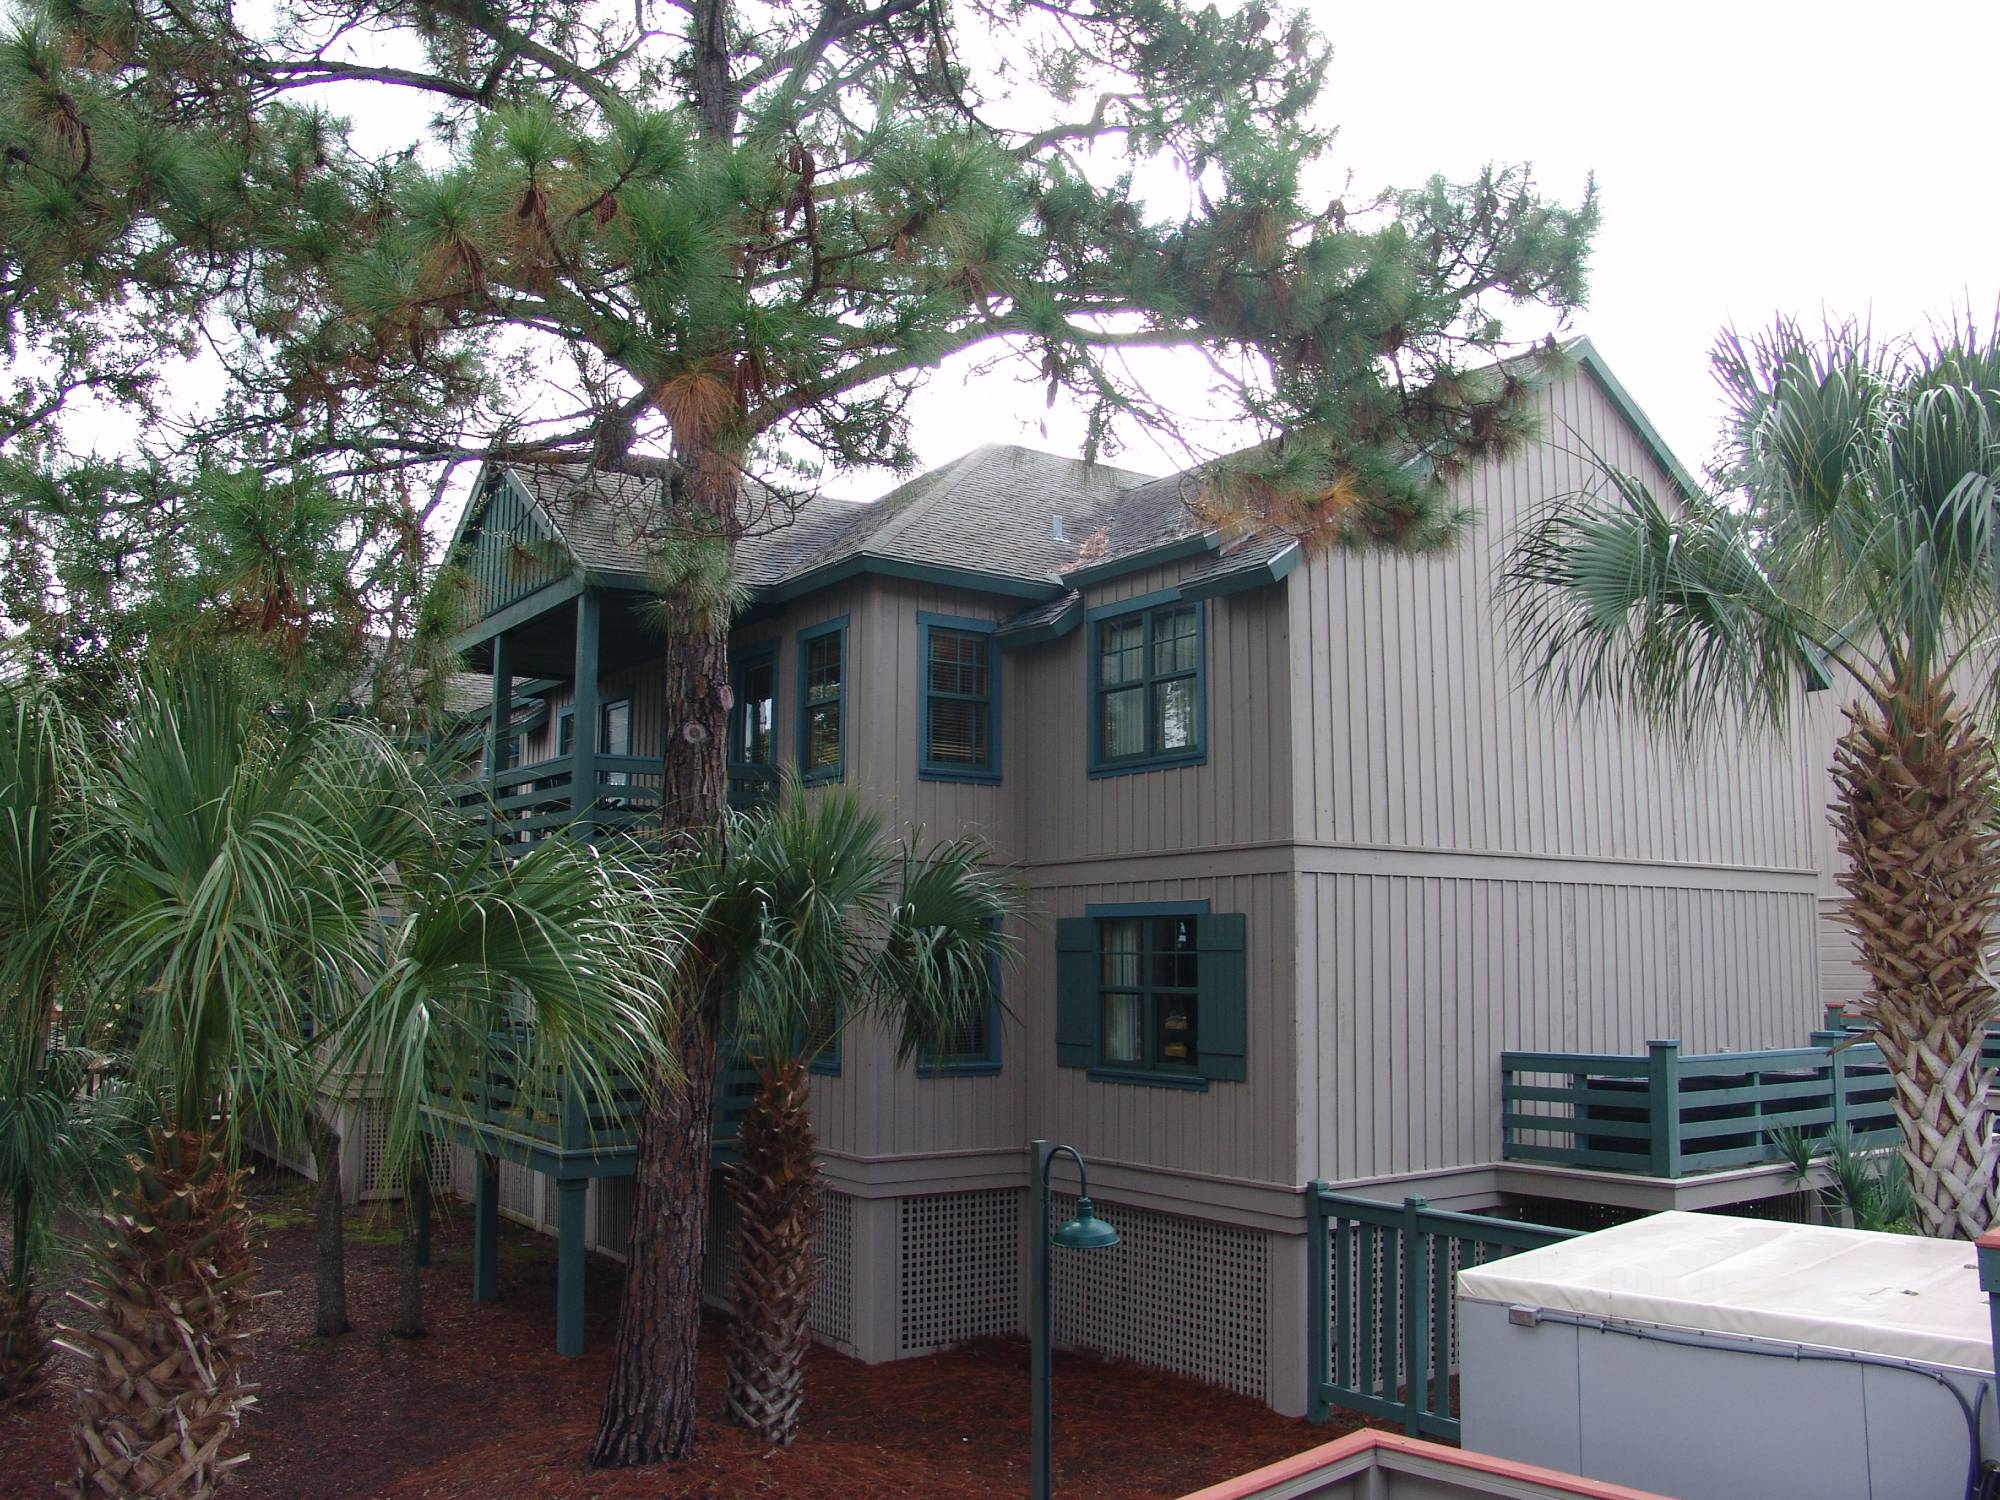 Hilton Head Island - buildings